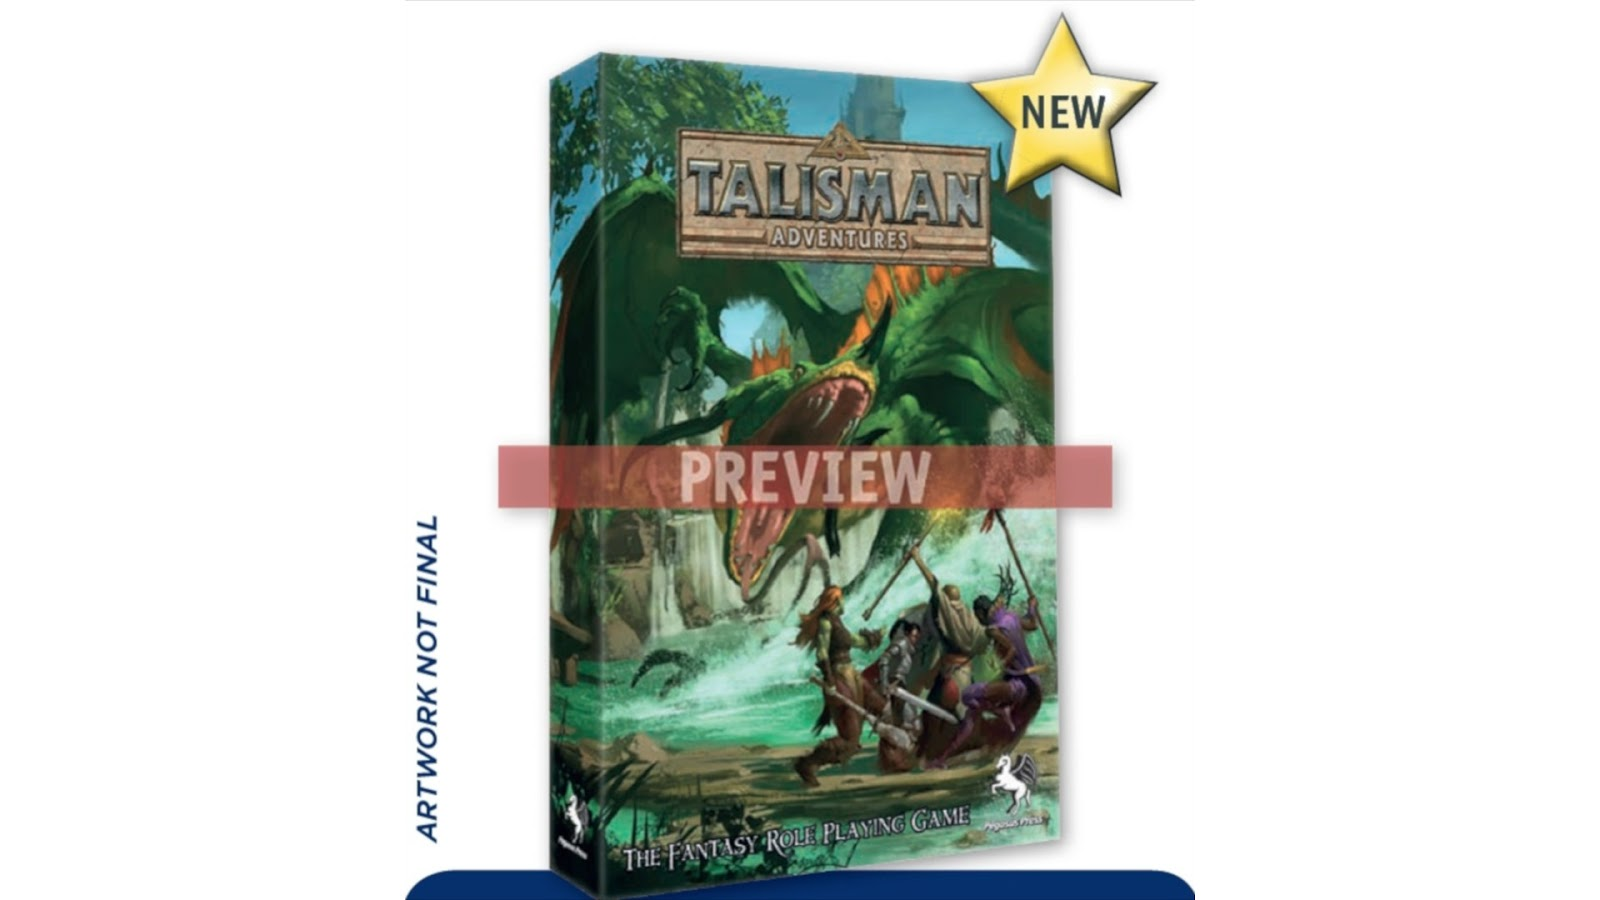 Talisman Adventure Game Fantasy Role Play Game RPFG Board Game News